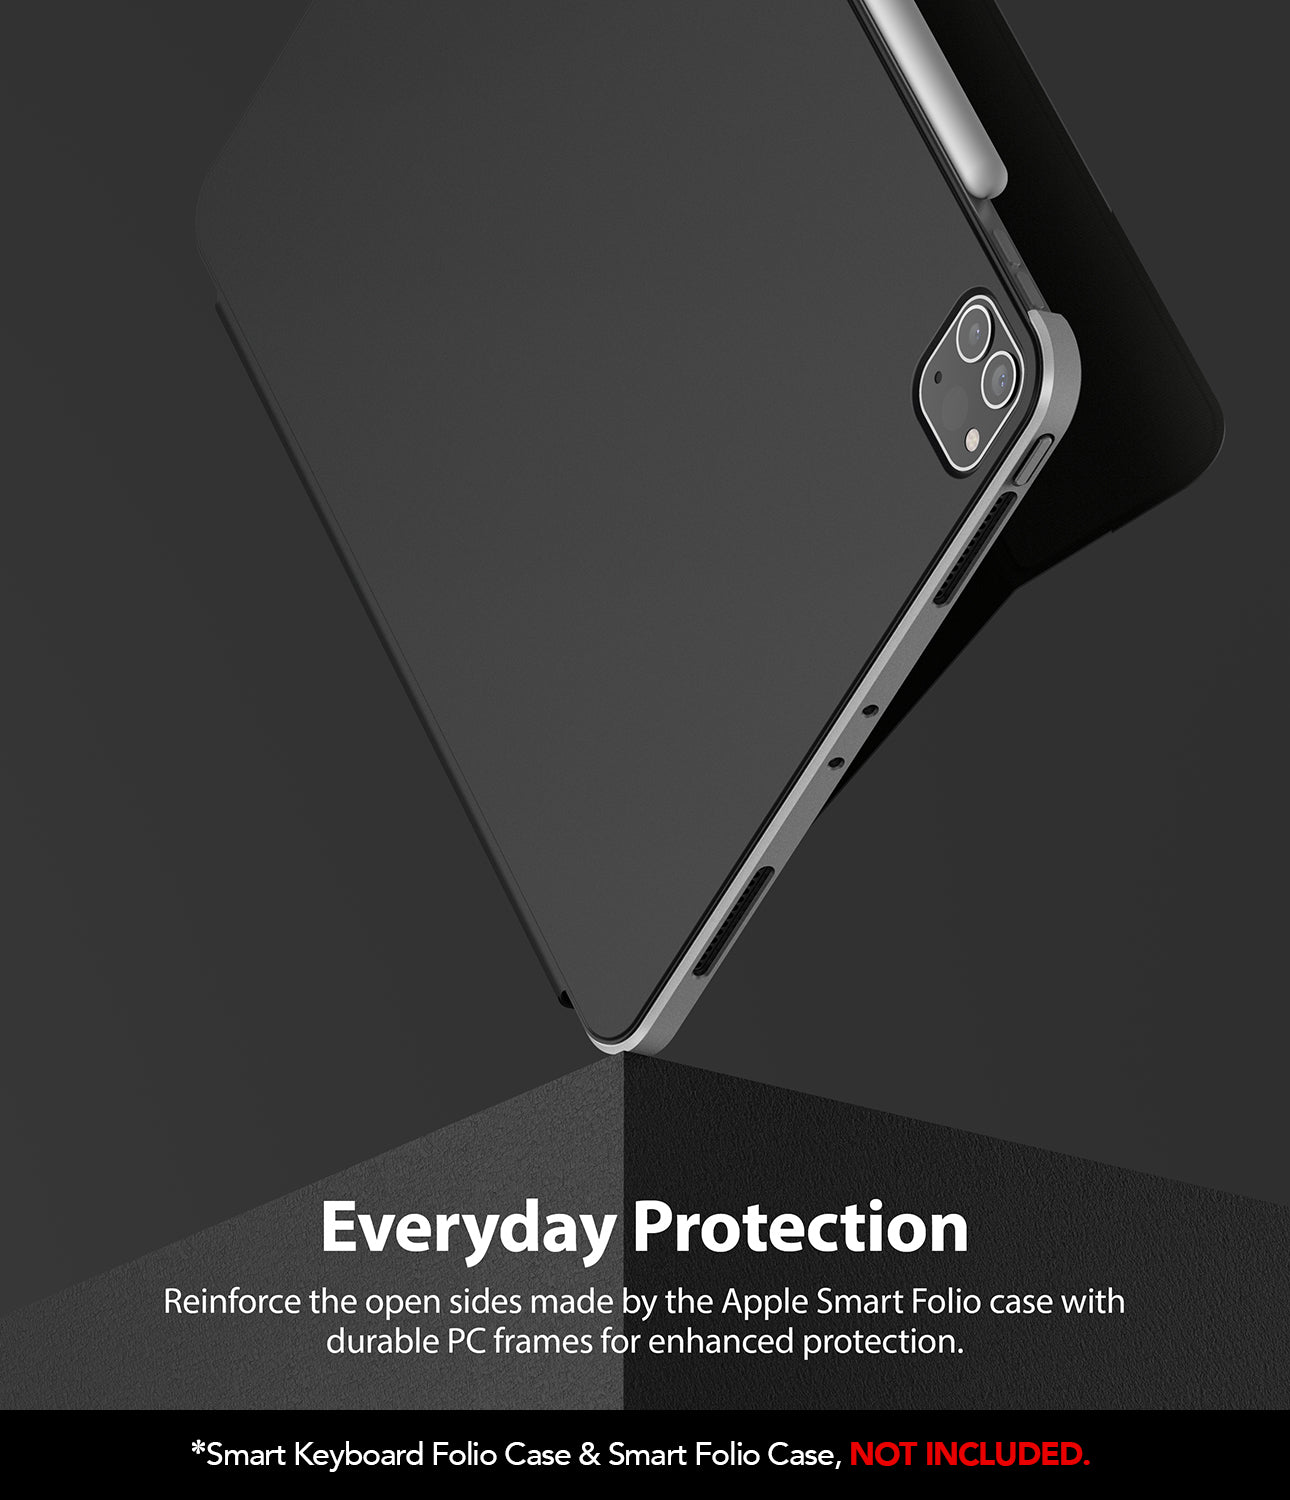 reinforce the open sides by the apple original folio case with durable pc frames for enhanced protection